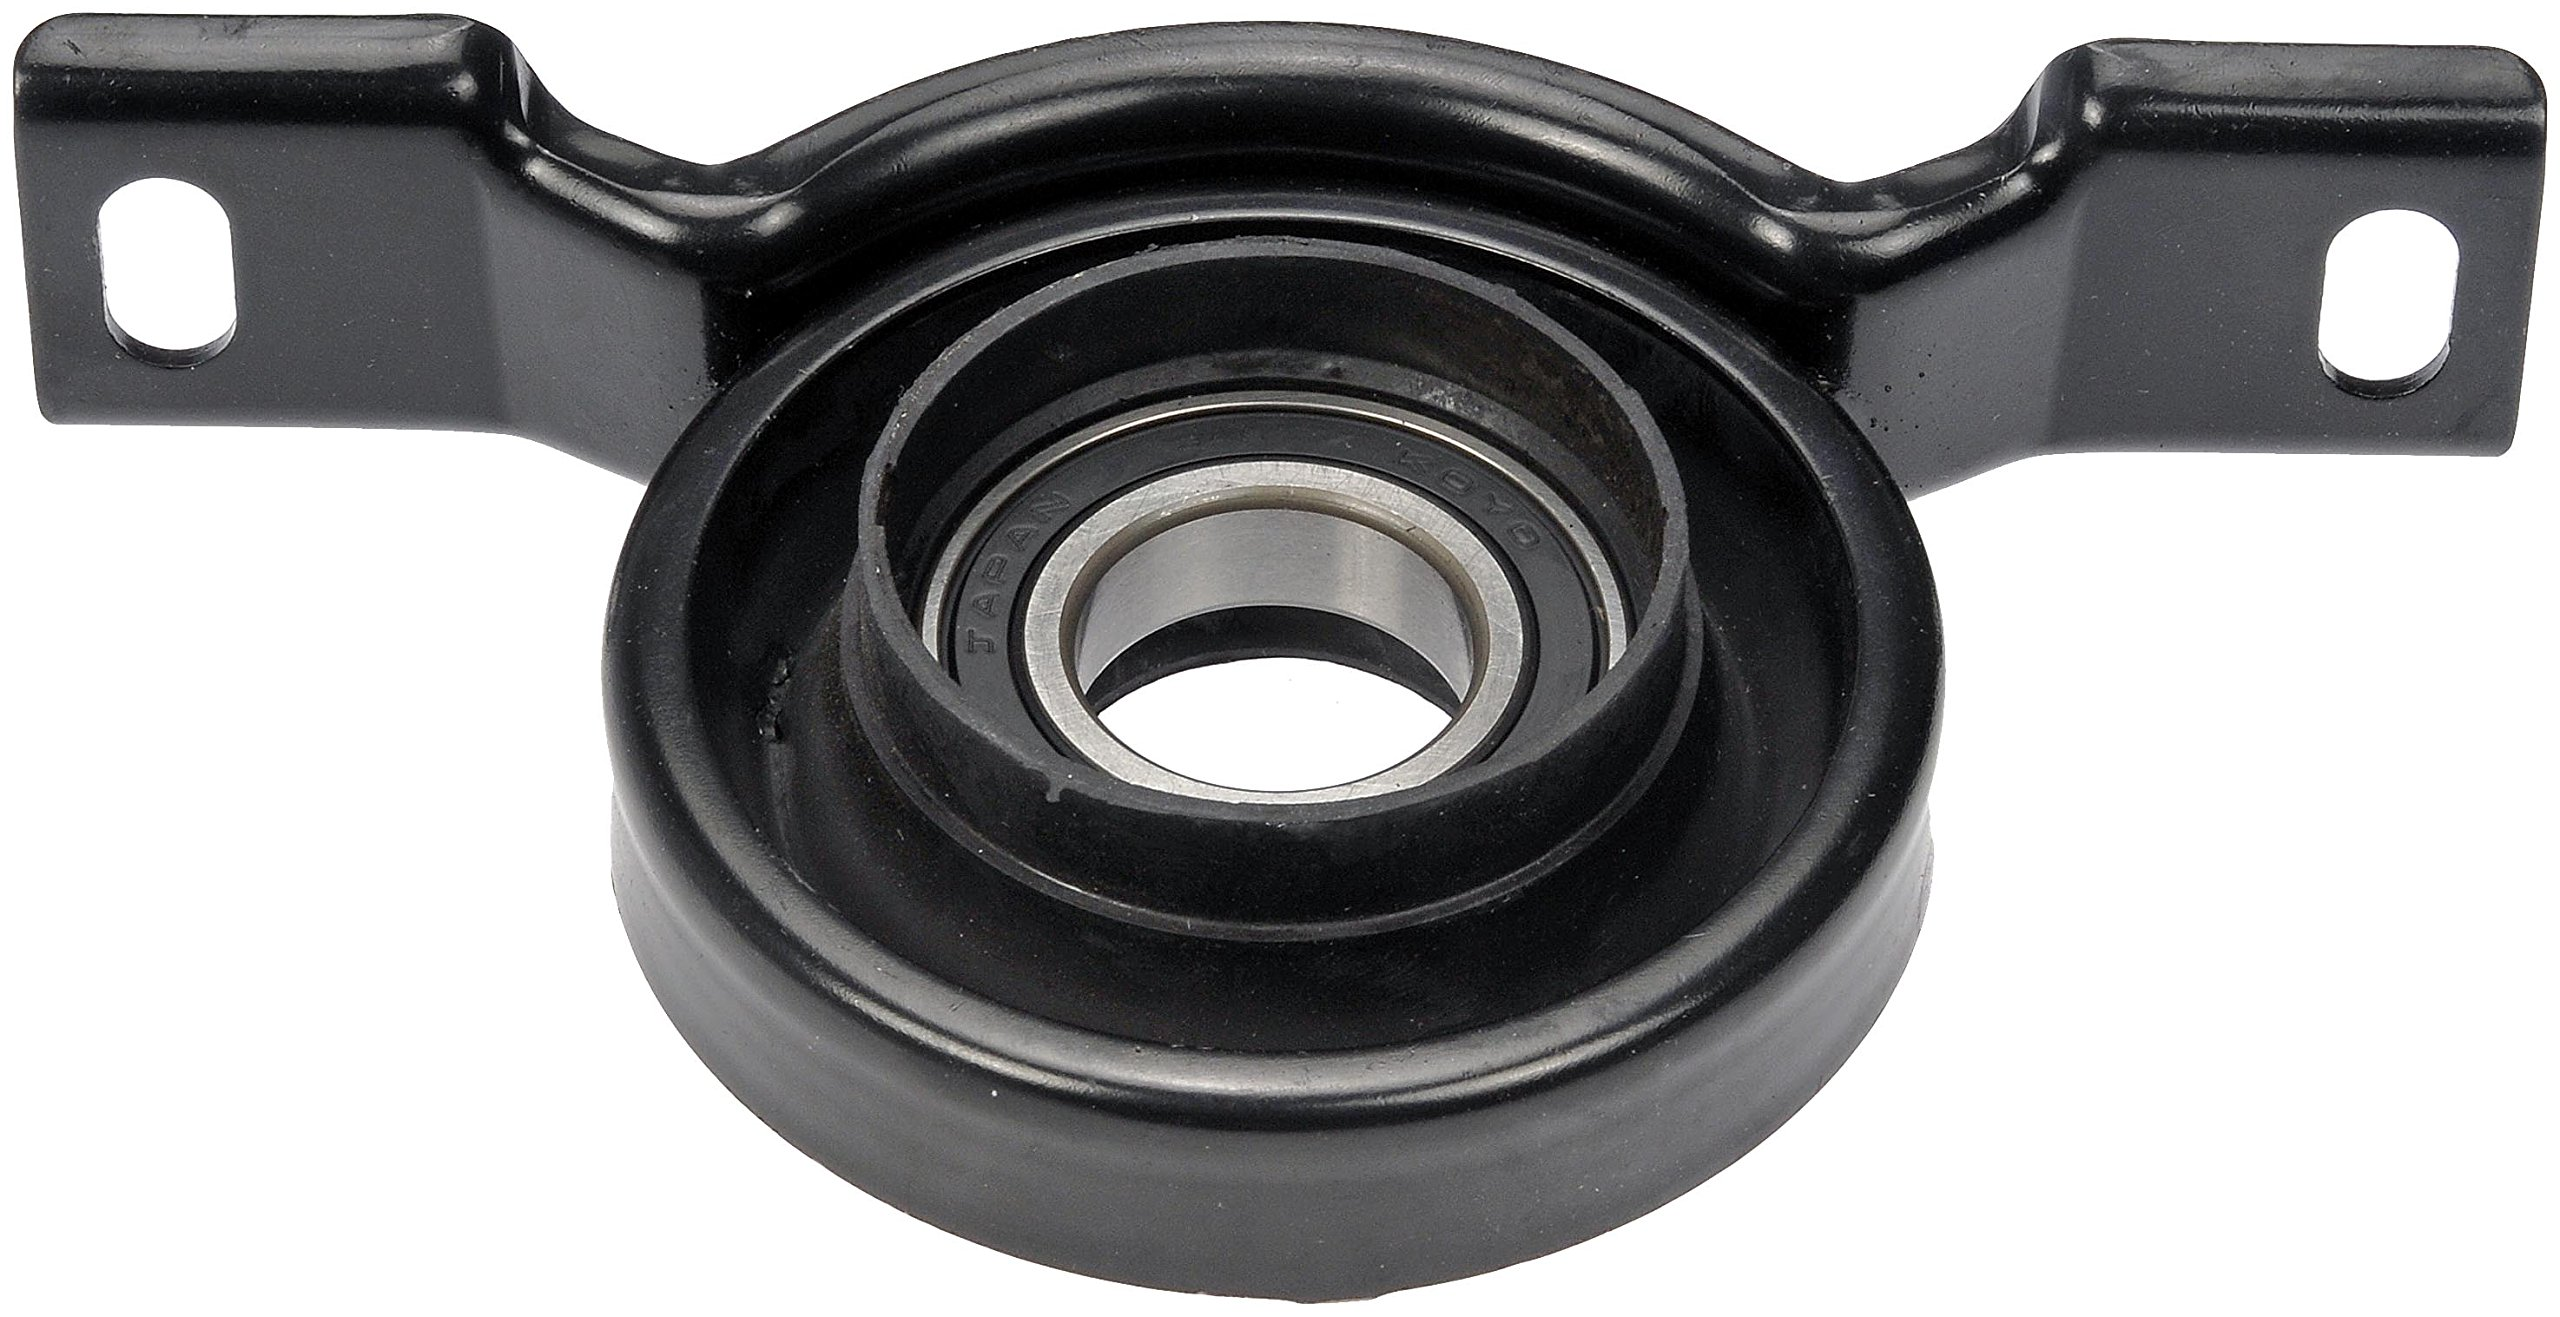 Dorman 934-620 Drive Shaft Center Support Bearing for Select Cadillac Models